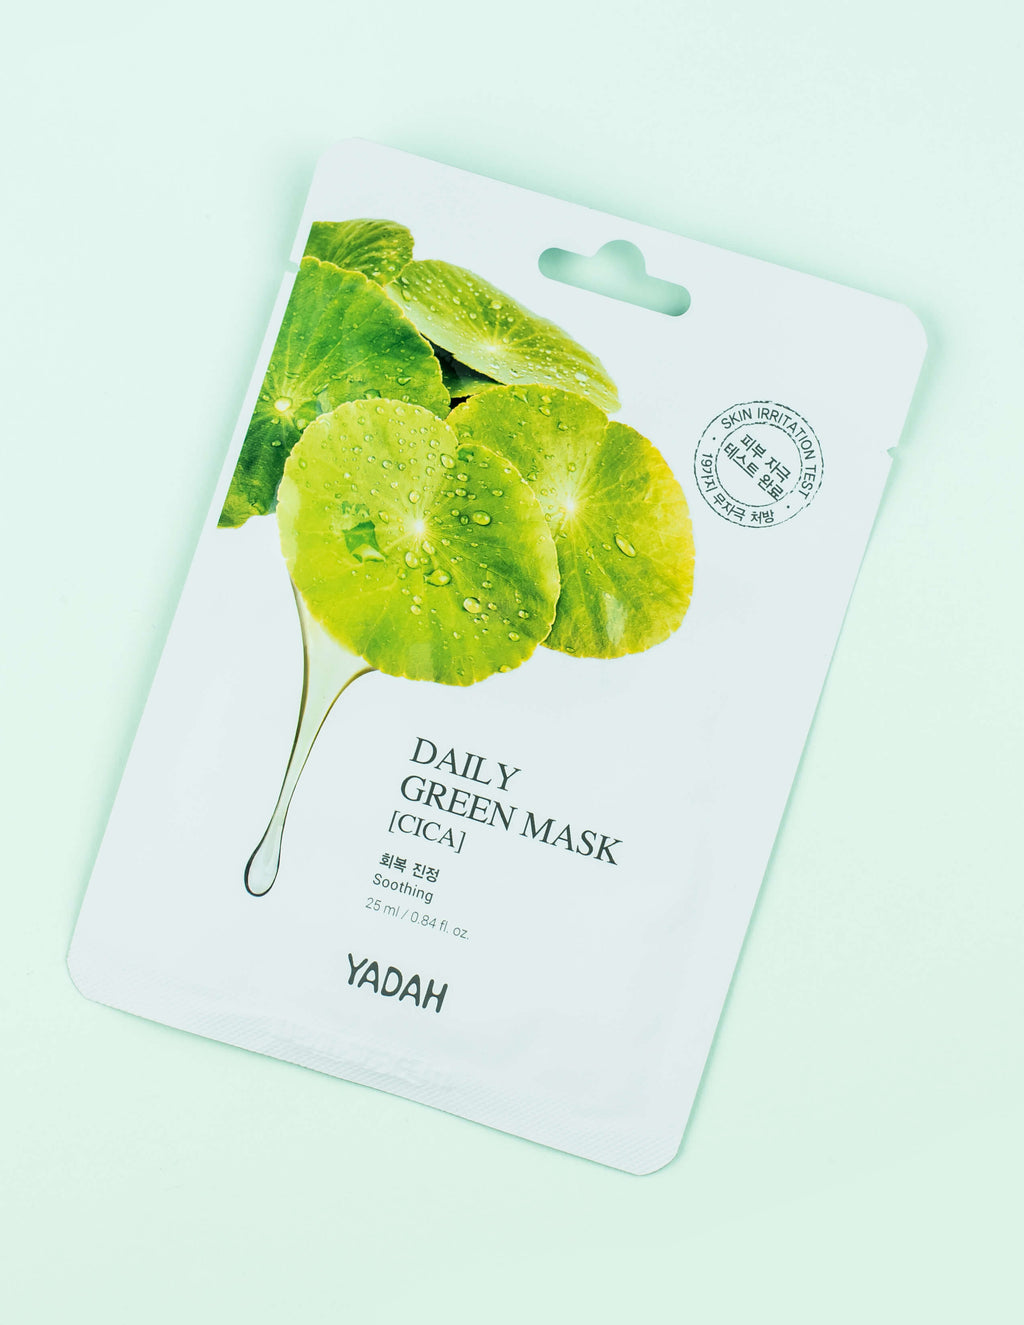 Daily Green Mask - Cica